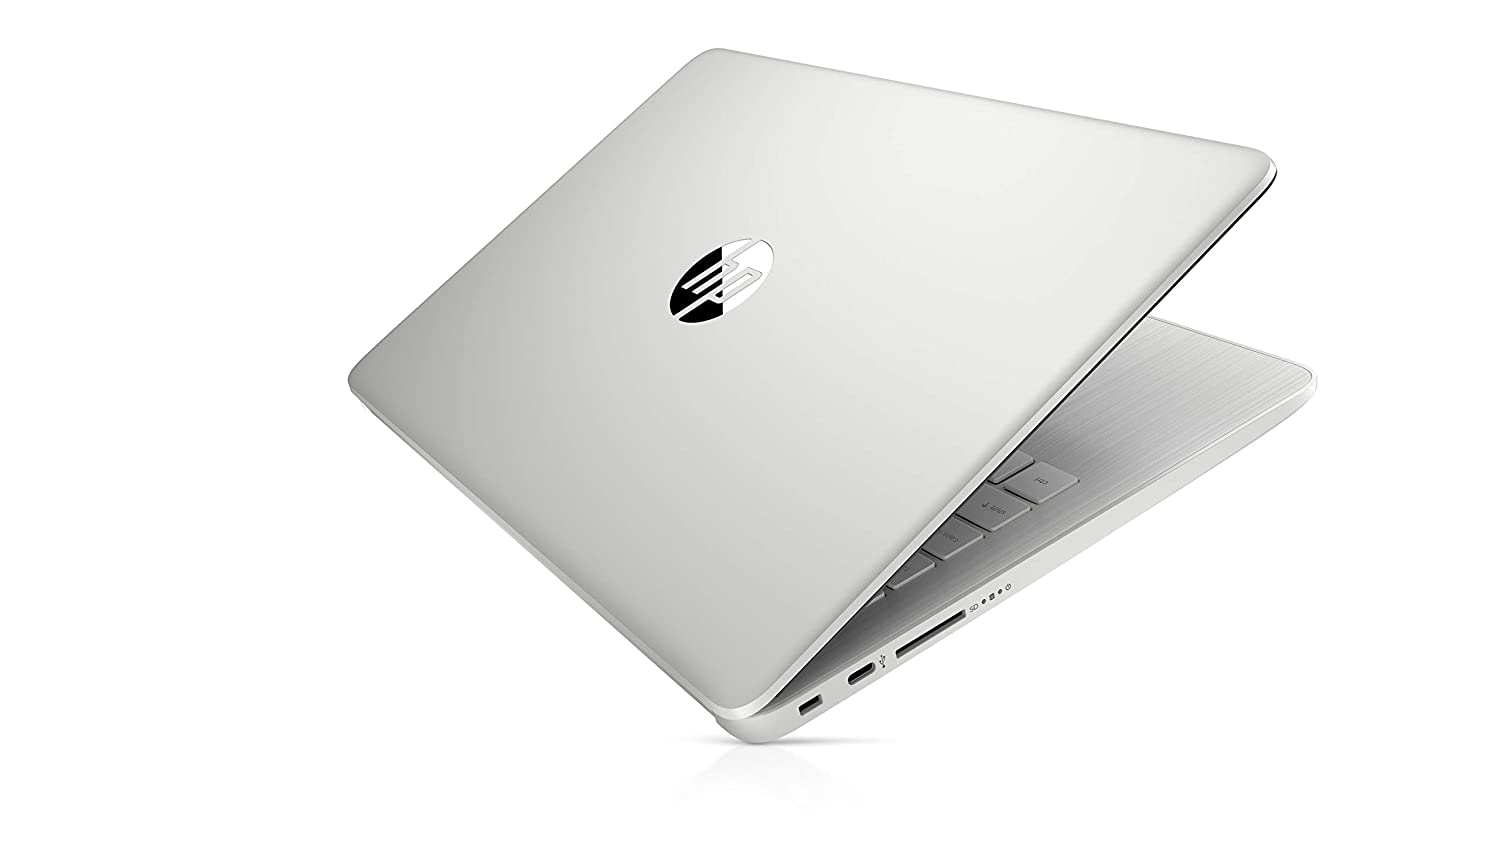 HP 14 Laptop (Ryzen 5 3500U/8GB/1TB HDD + 256GB SSD/Win 10/Microsoft Office 2019/Radeon Vega 8 Graph